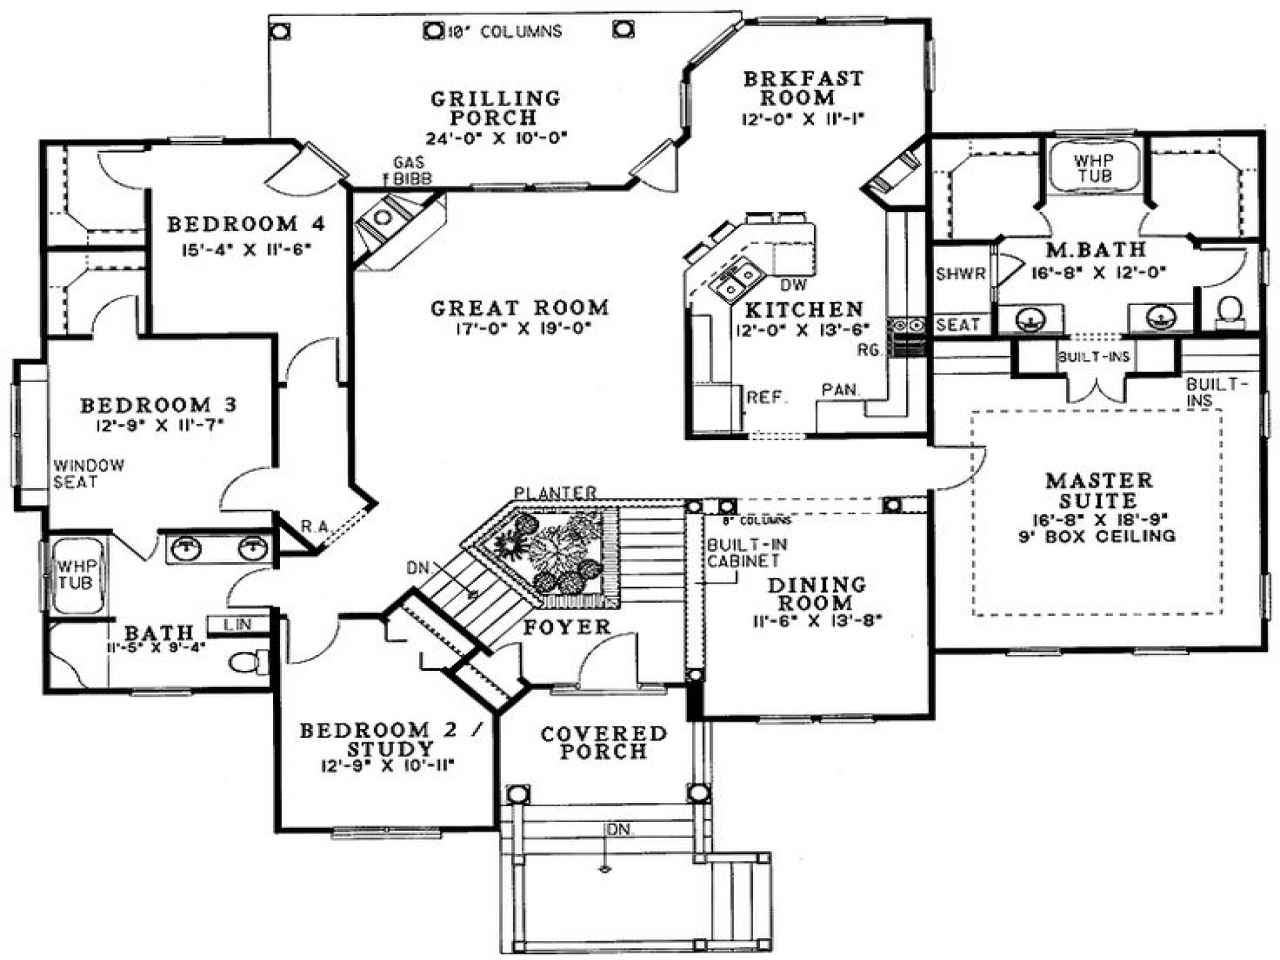 Small Ranch House Plans on narrow lot house plans, bungalow house plans, small beach house plans, 1000 square foot house plans, small 1 story house plans, tiny house plans, small 3 bedrooms house plans, country house plans, small unique house plans, shotgun house plans, florida house plans, small ranch designs, small rustic house plans, cape cod house plans, cottage house plans, craftsman house plans, small lake house plans, simple house plans, small split bedroom house plans,